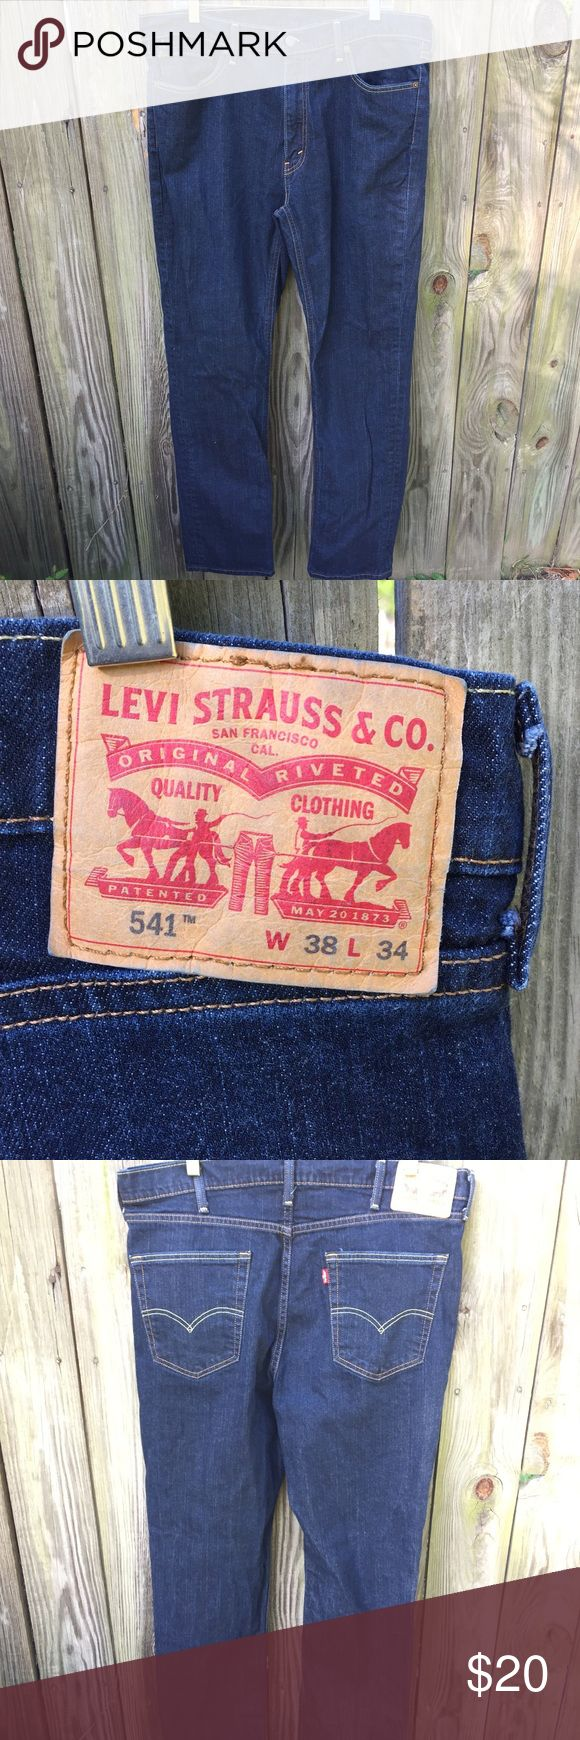 Men's Levi's 541 Athletic Fit Like new Men's Levi Jeans , 541, W 38, L 34, These are timeless and a closet staple, great condition Levi's Jeans